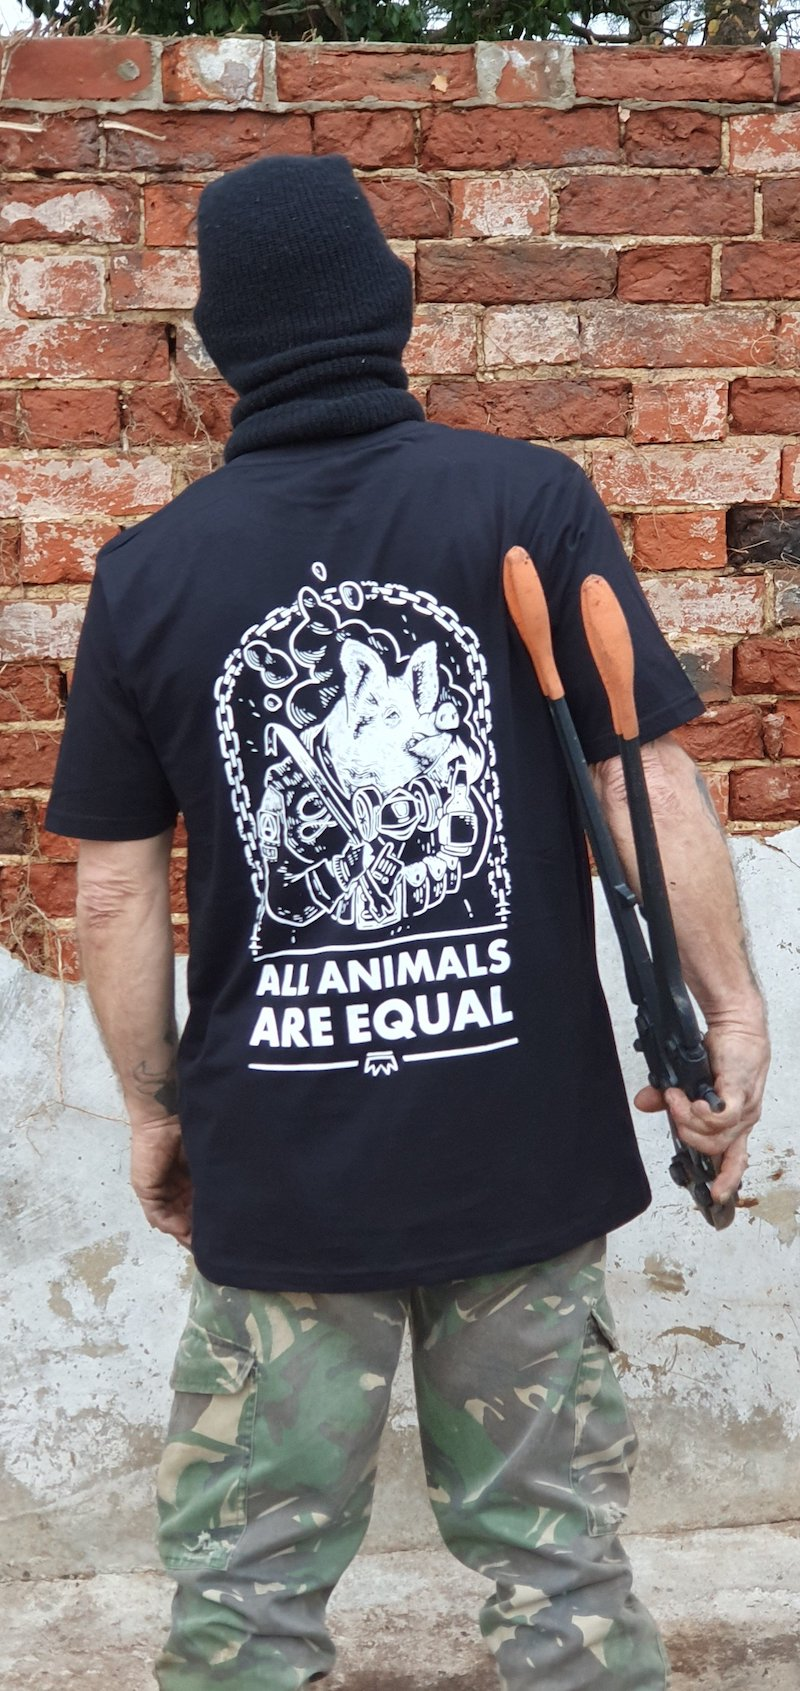 All Animals Are Equal - Tee